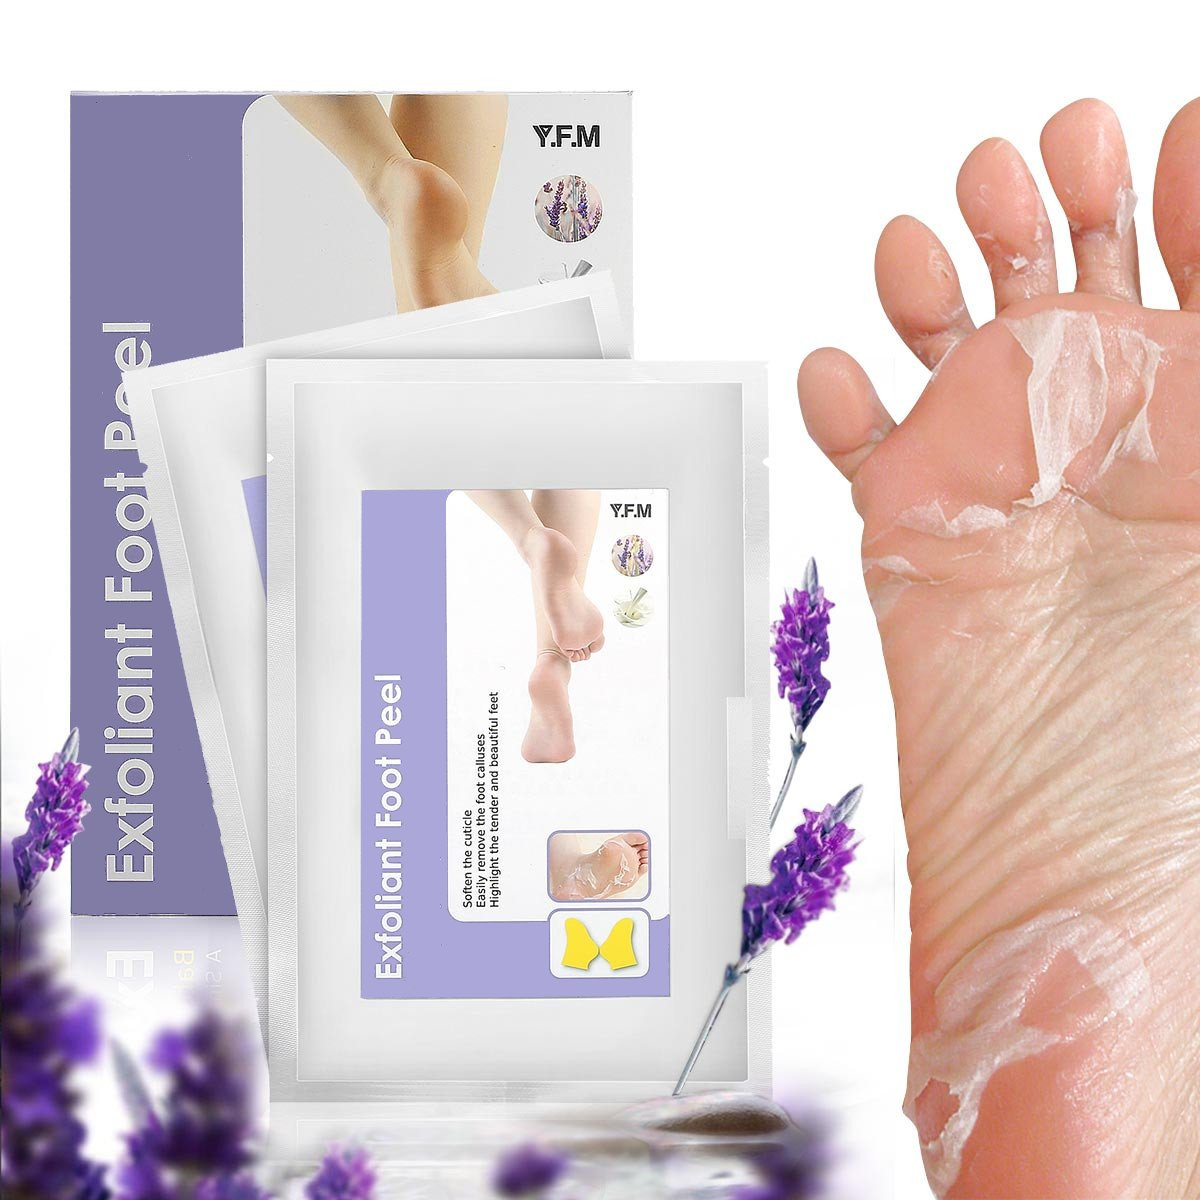 Foot Peel Mask, Y.F.M Exfoliating Calluses and Dead Skin Remover, Exfoliating Foot Peel Mask, Repair Rough Heels, Make Your Feet Baby Soft, Lavender Scented - 2 Pairs per Box